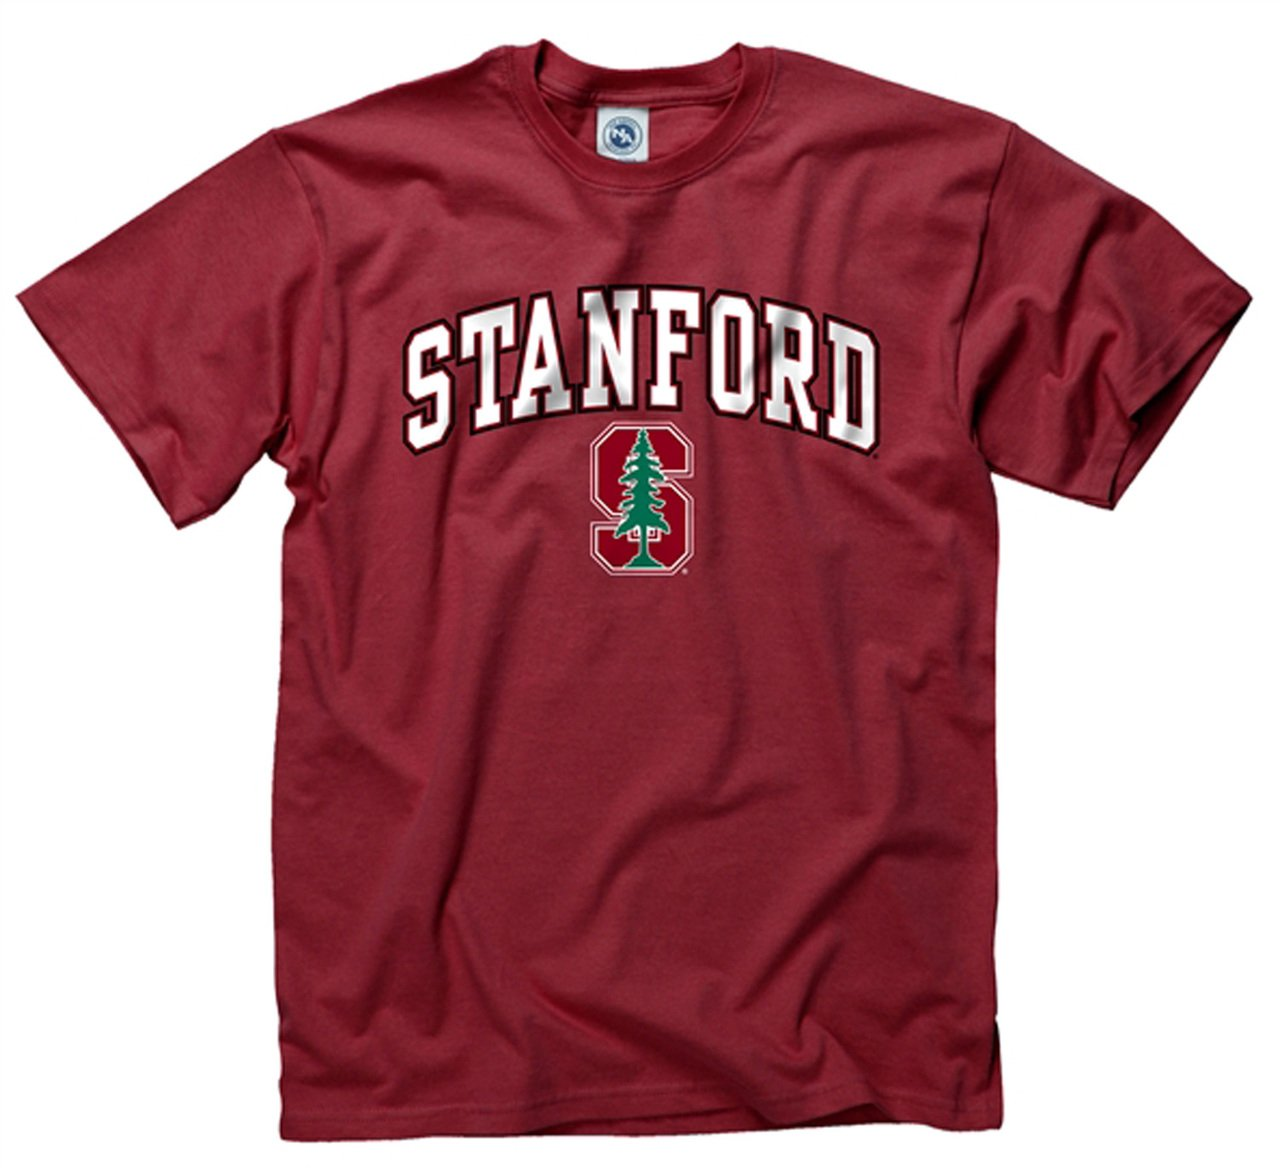 Buy Stanford Now!